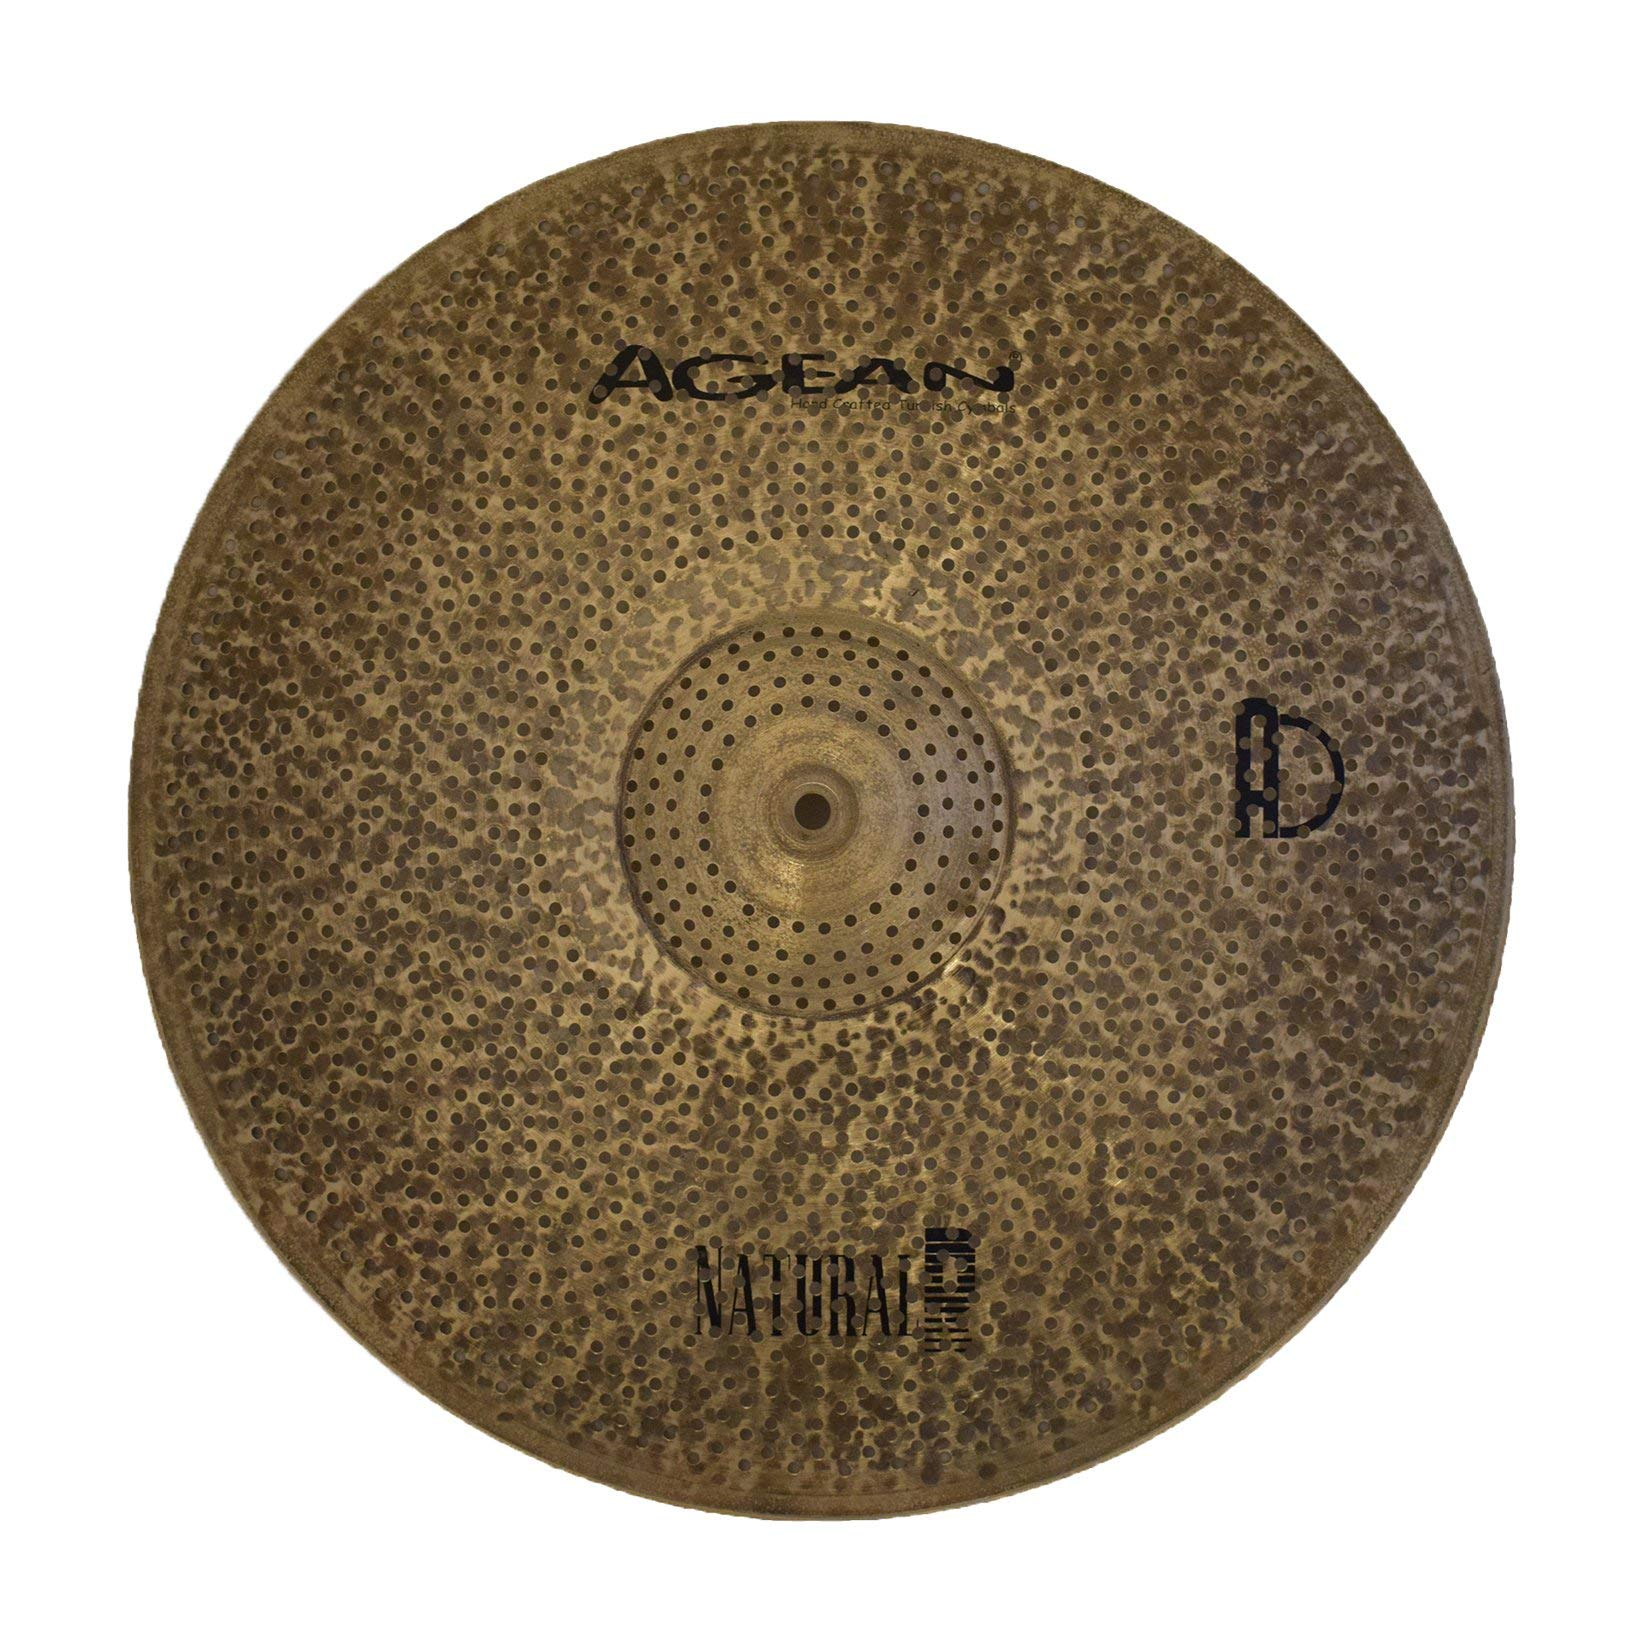 Agean Cymbals Natural R-Series 16-inch Low Volume Crash by Agean Cymbals